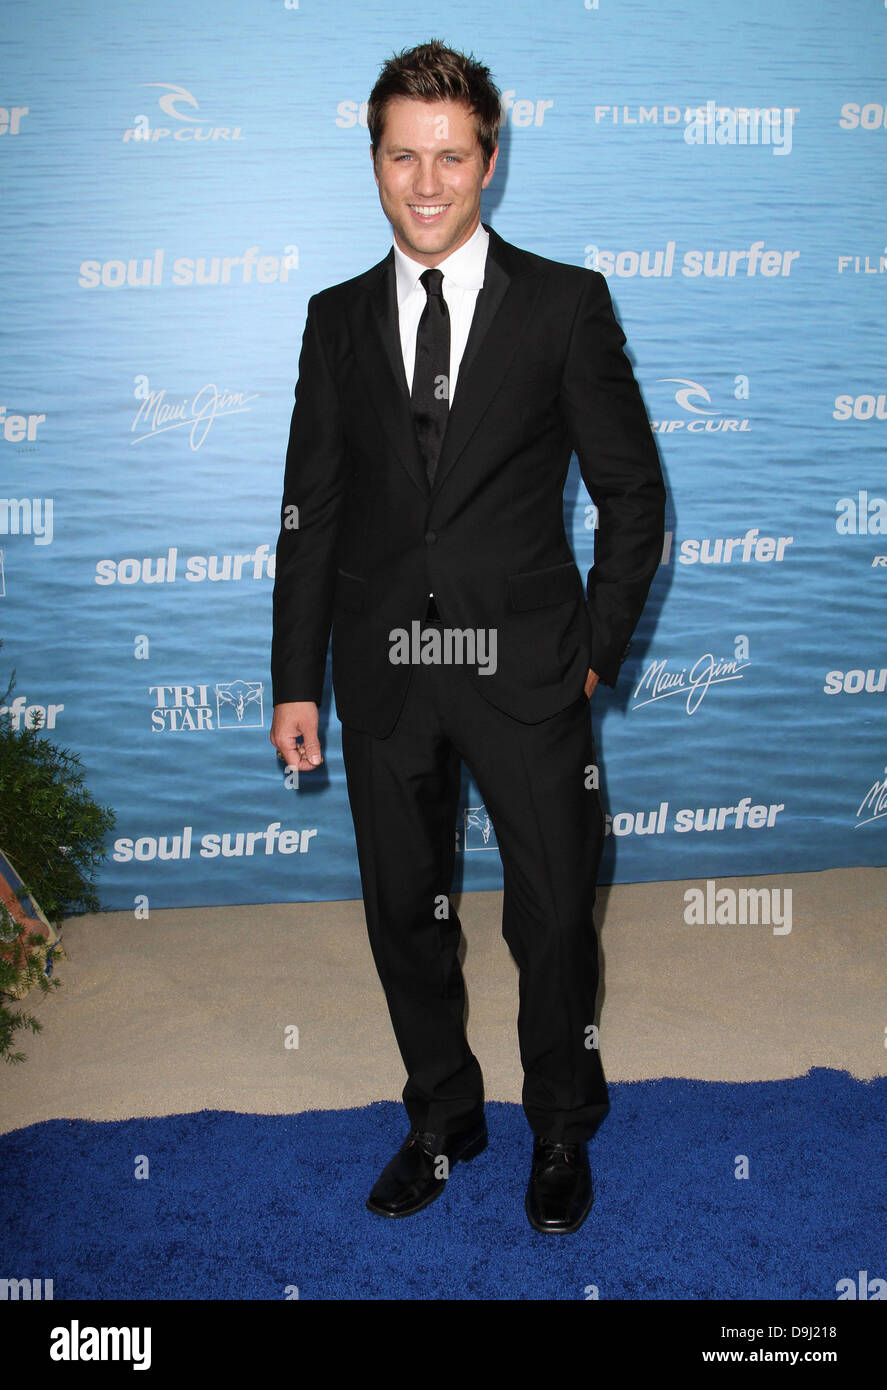 Ross Thomas 'Soul Surfer' Los Angeles Premiere Held At the ArcLight Cinerama Dome Hollywood, California - Stock Image